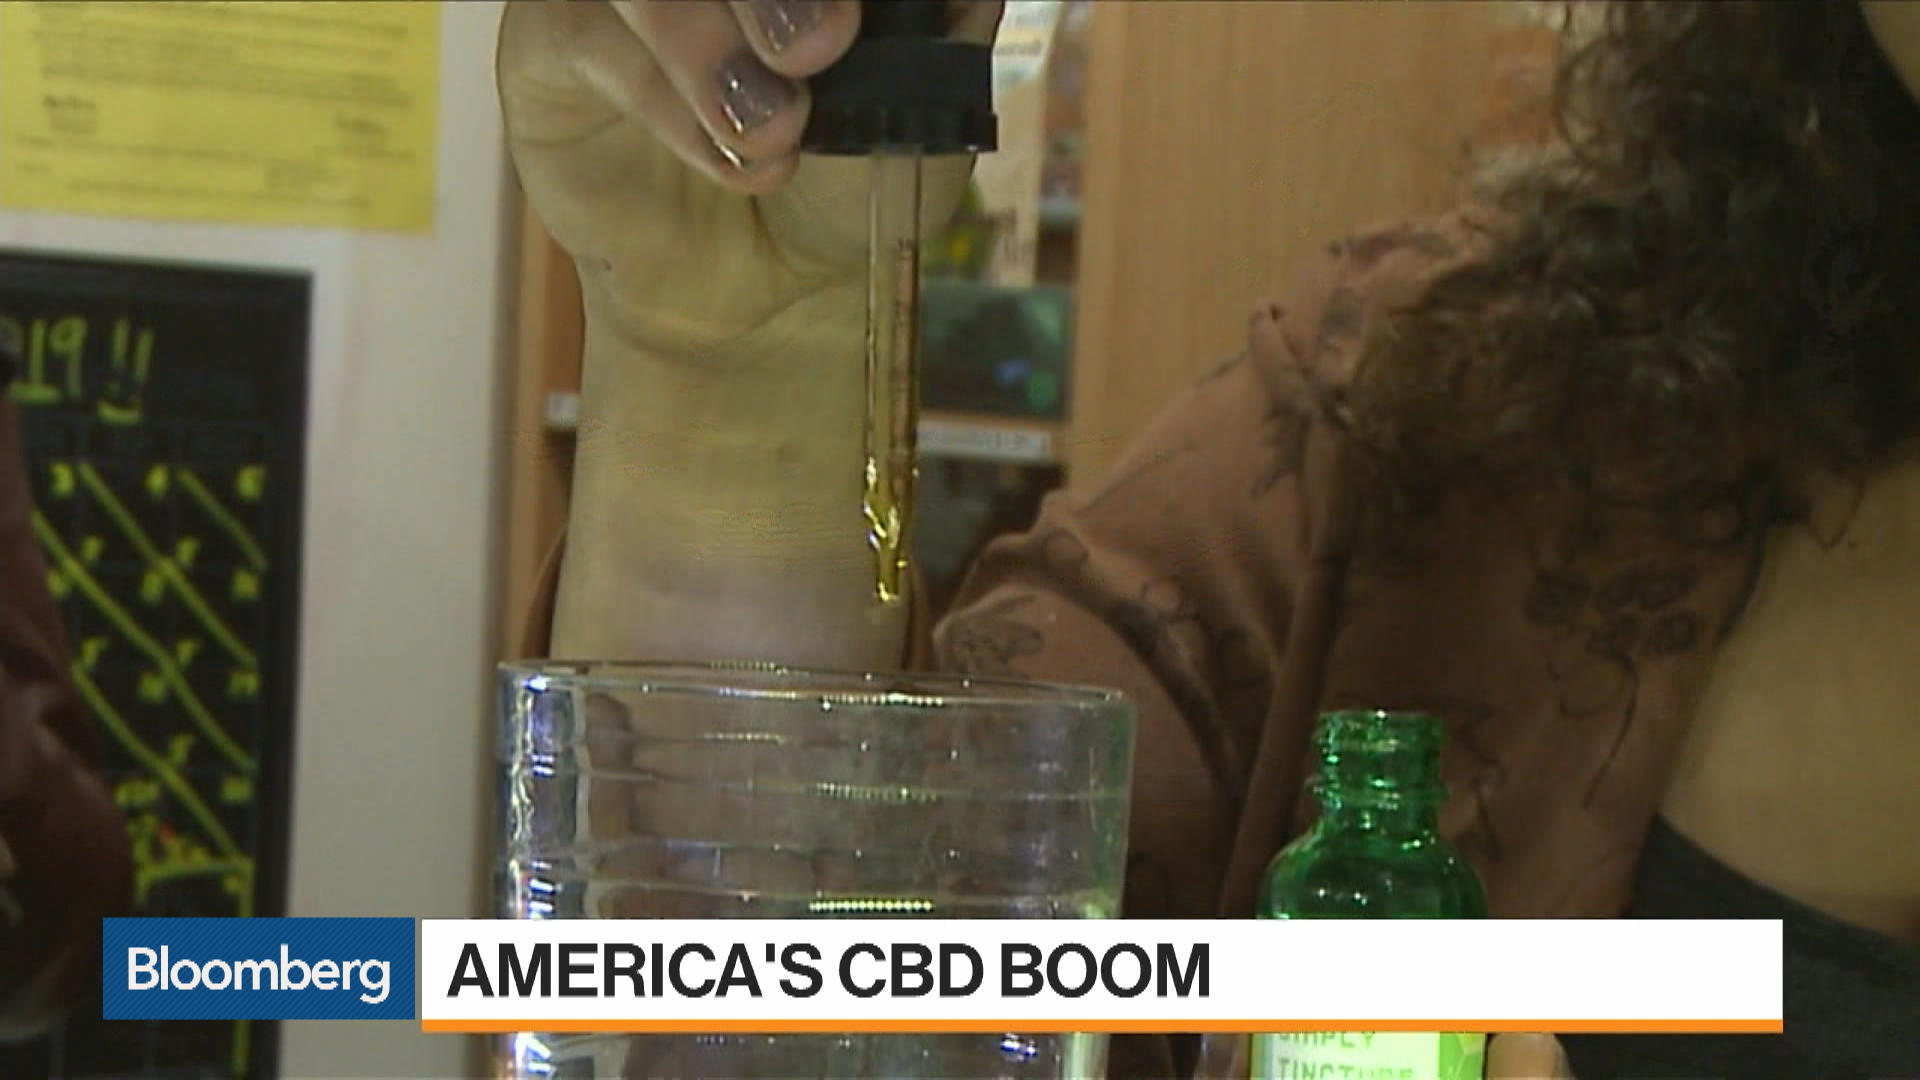 Brazen CBD Claims Under Scrutiny in U.S.